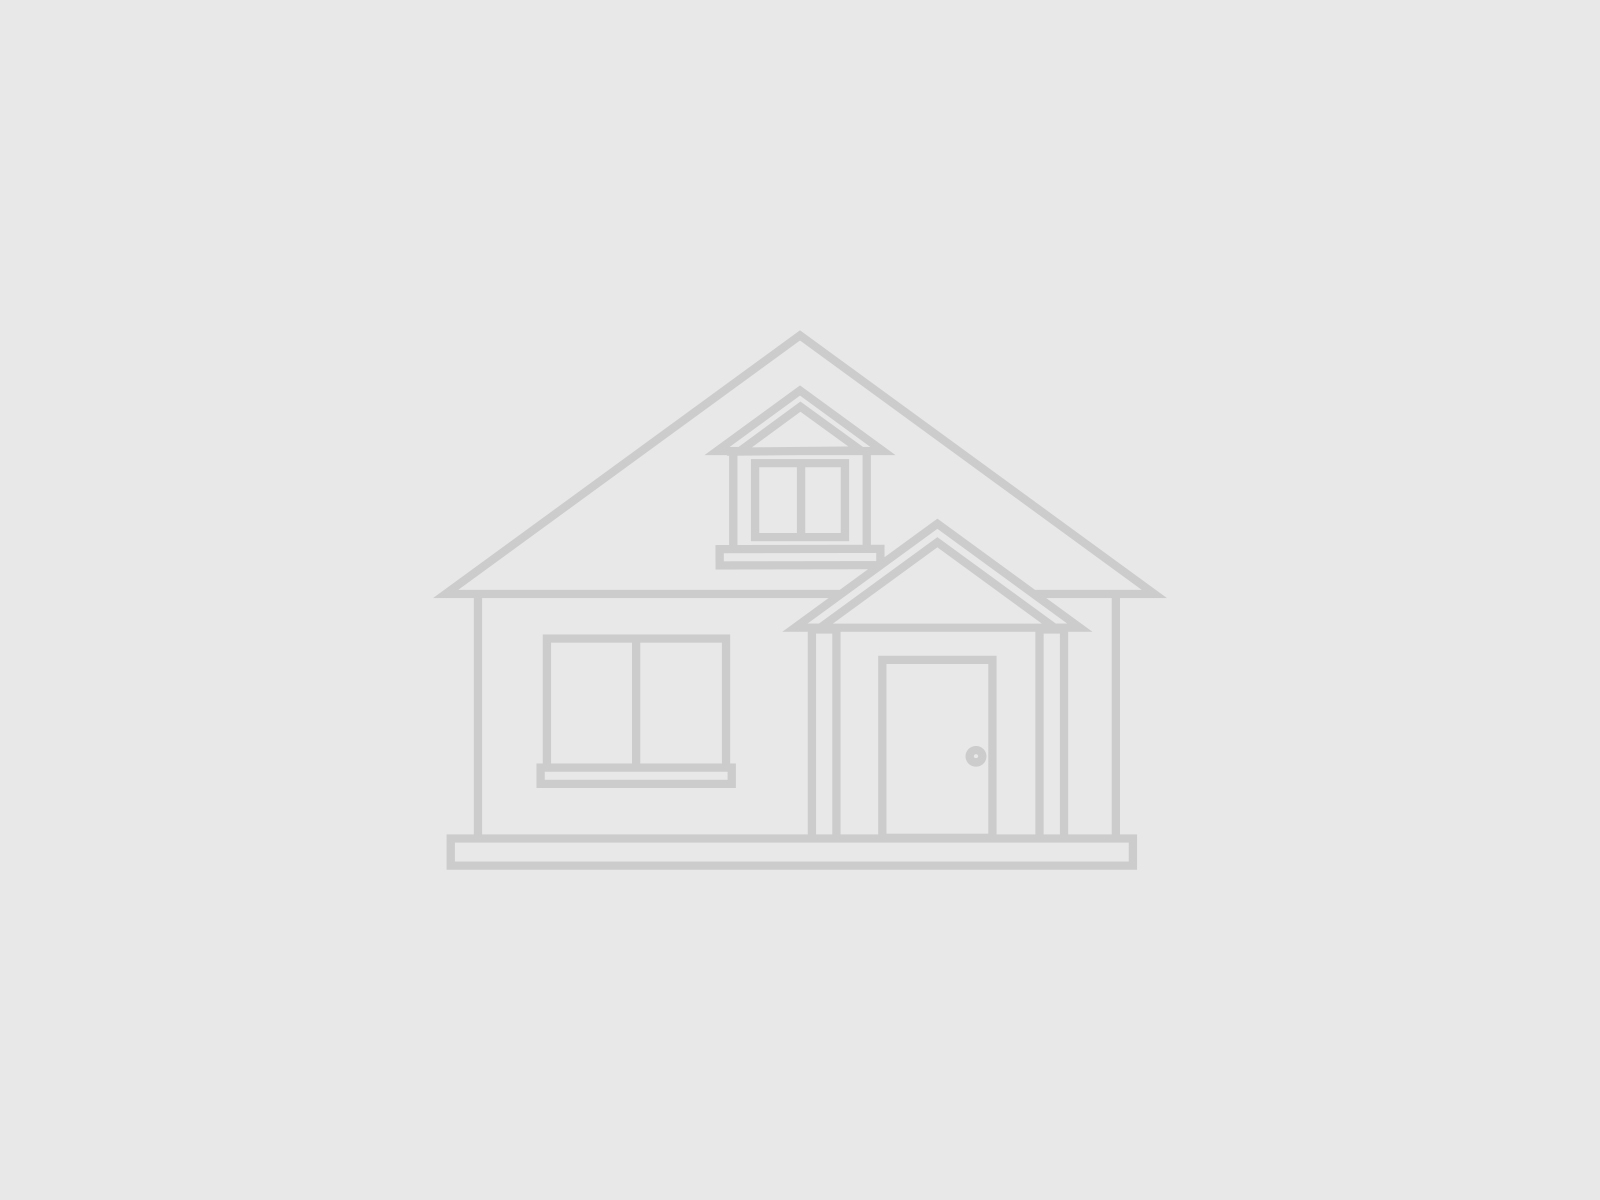 Single Family Homes for Sale at 106 TEN ROD Road Exeter, Rhode Island 02822 United States